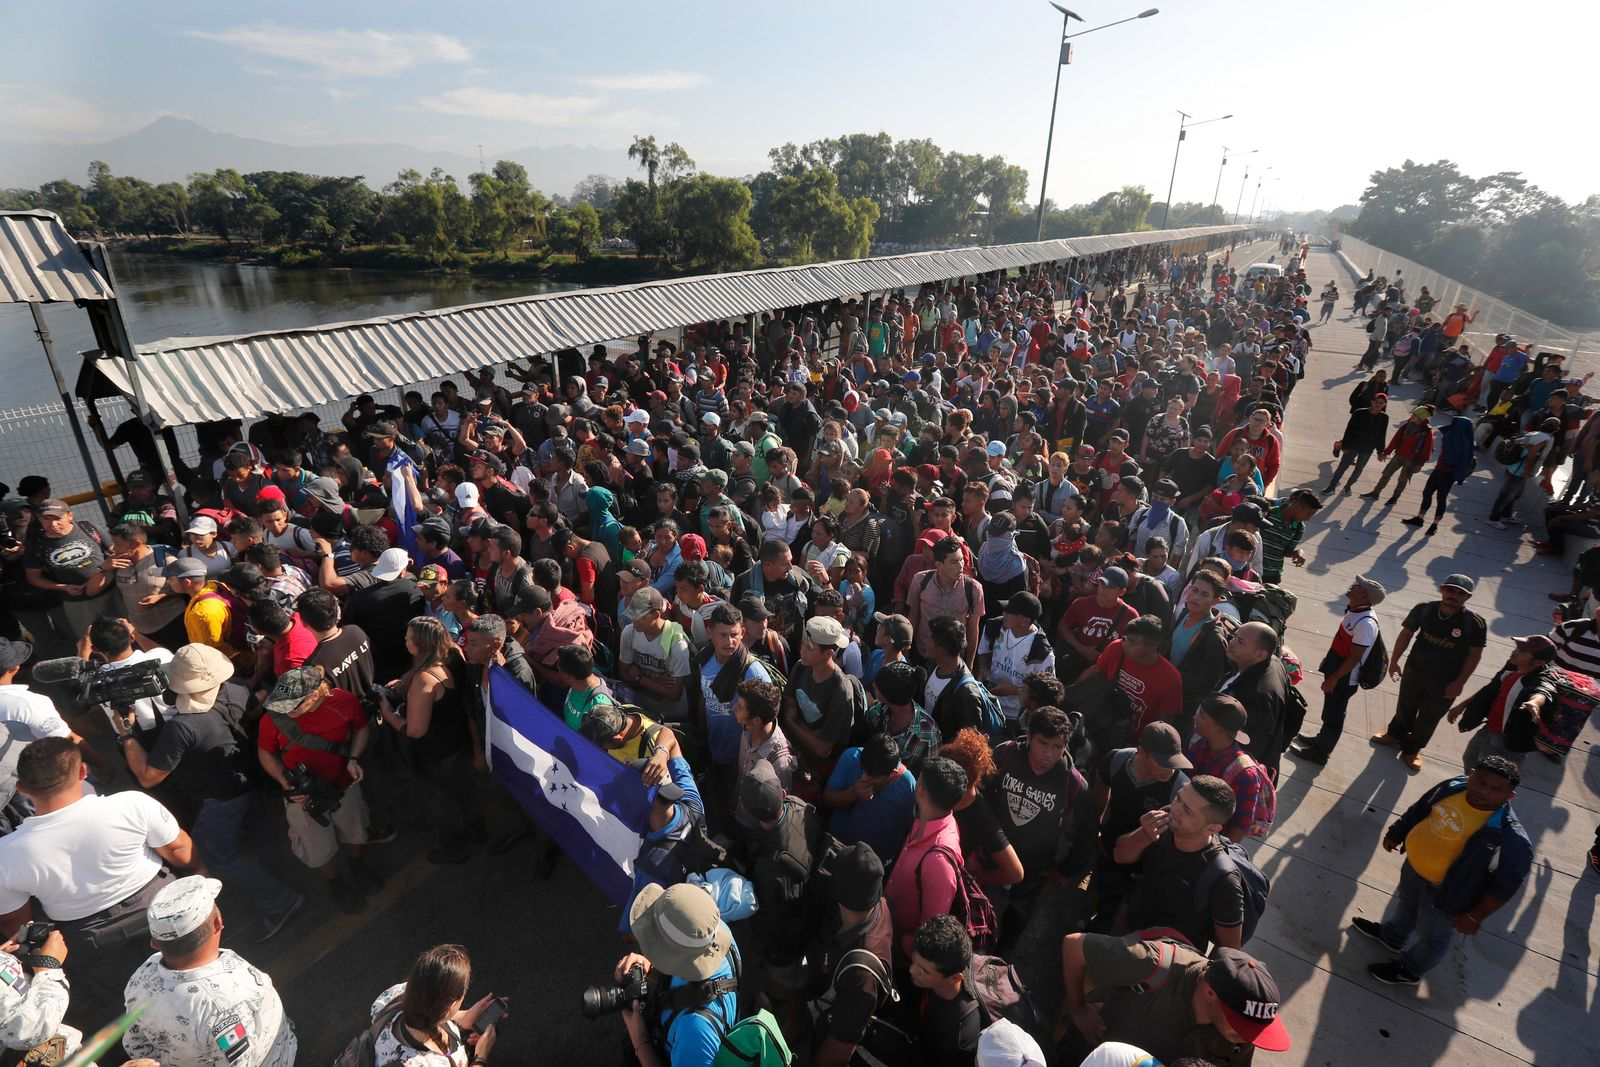 Migrants line up behind an Honduran flag at the border crossing between Guatemala and Mexico in Tecun Uman, Guatemala, Saturday, Jan. 18, 2020. More than a thousand Central American migrants surged onto a bridge spanning the Suchiate River between that marks the border between both countries as Mexican National Guardsmen attempted to impede their journey north. (AP Photo/Marco Ugarte)